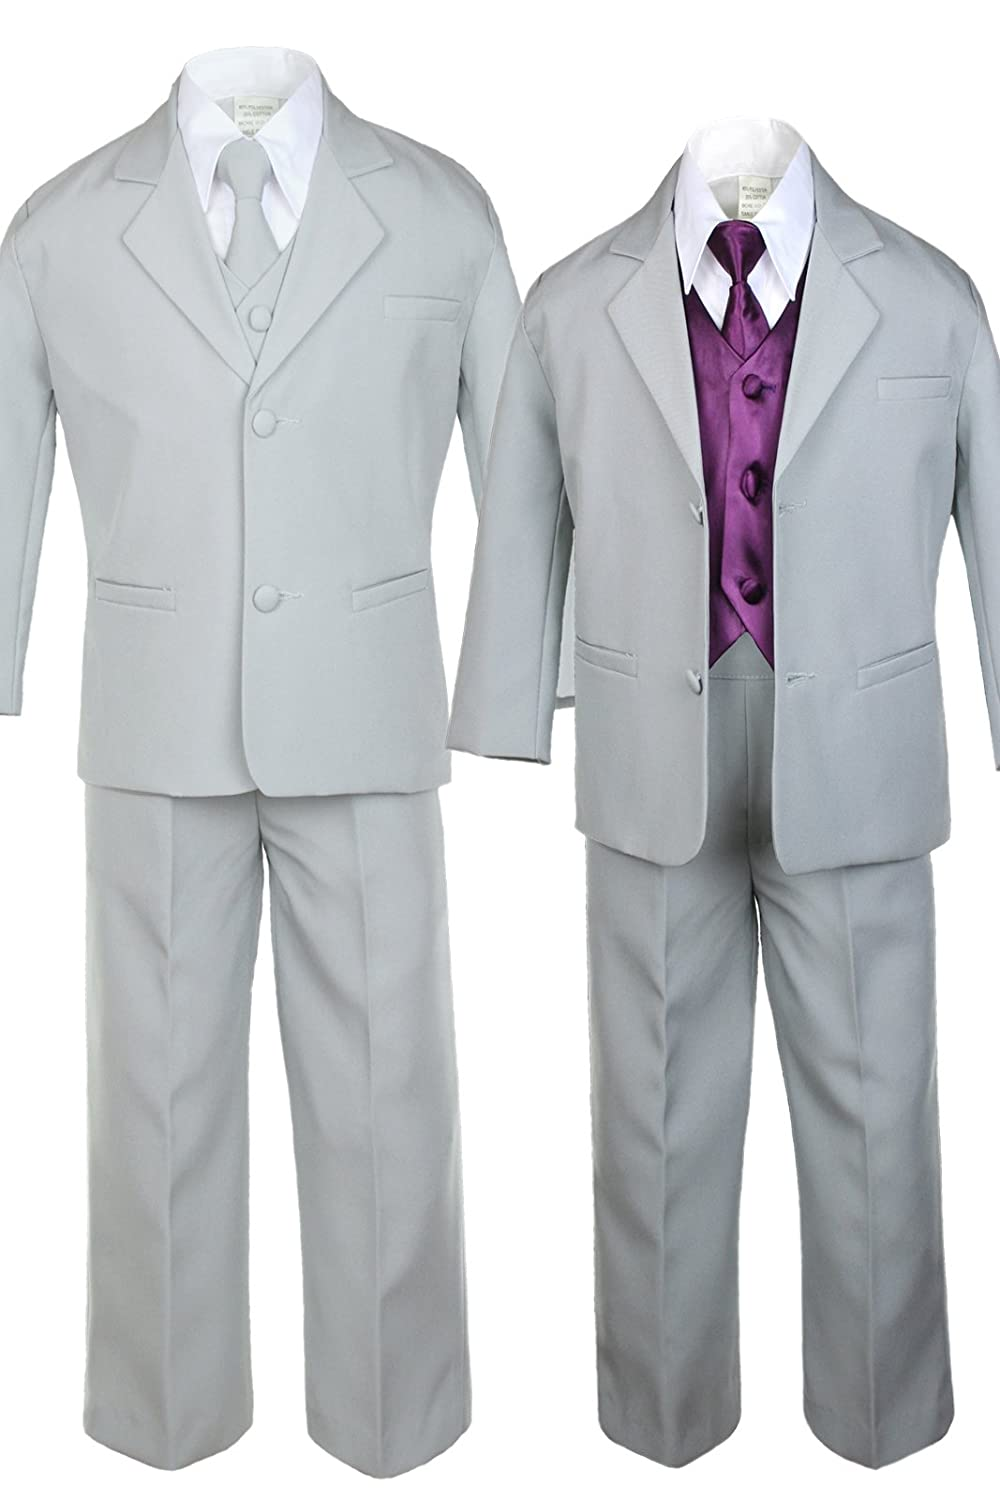 Unotux 7pc Boys Silver Suit with Satin Eggplant Vest Set from Baby to Teen